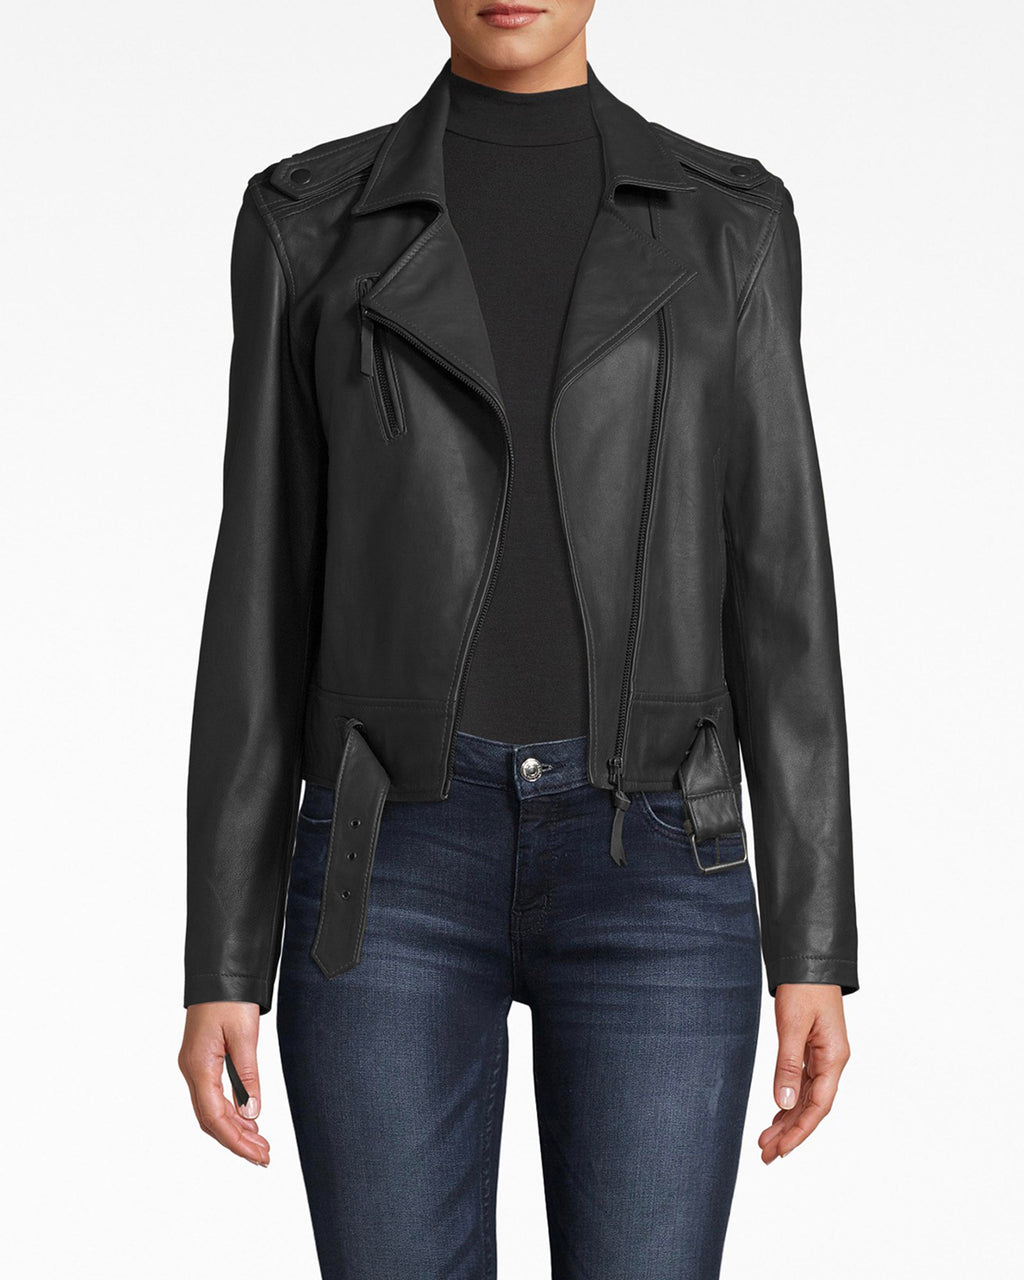 CL10036 - LEATHER MOTO JACKET - outerwear - jackets - Ready for leather jacket season? The tailoring and fit of this moto jacket create a simple and chic silhouette. The army green shade adds a dose of utilitarianism. Pair over anything.